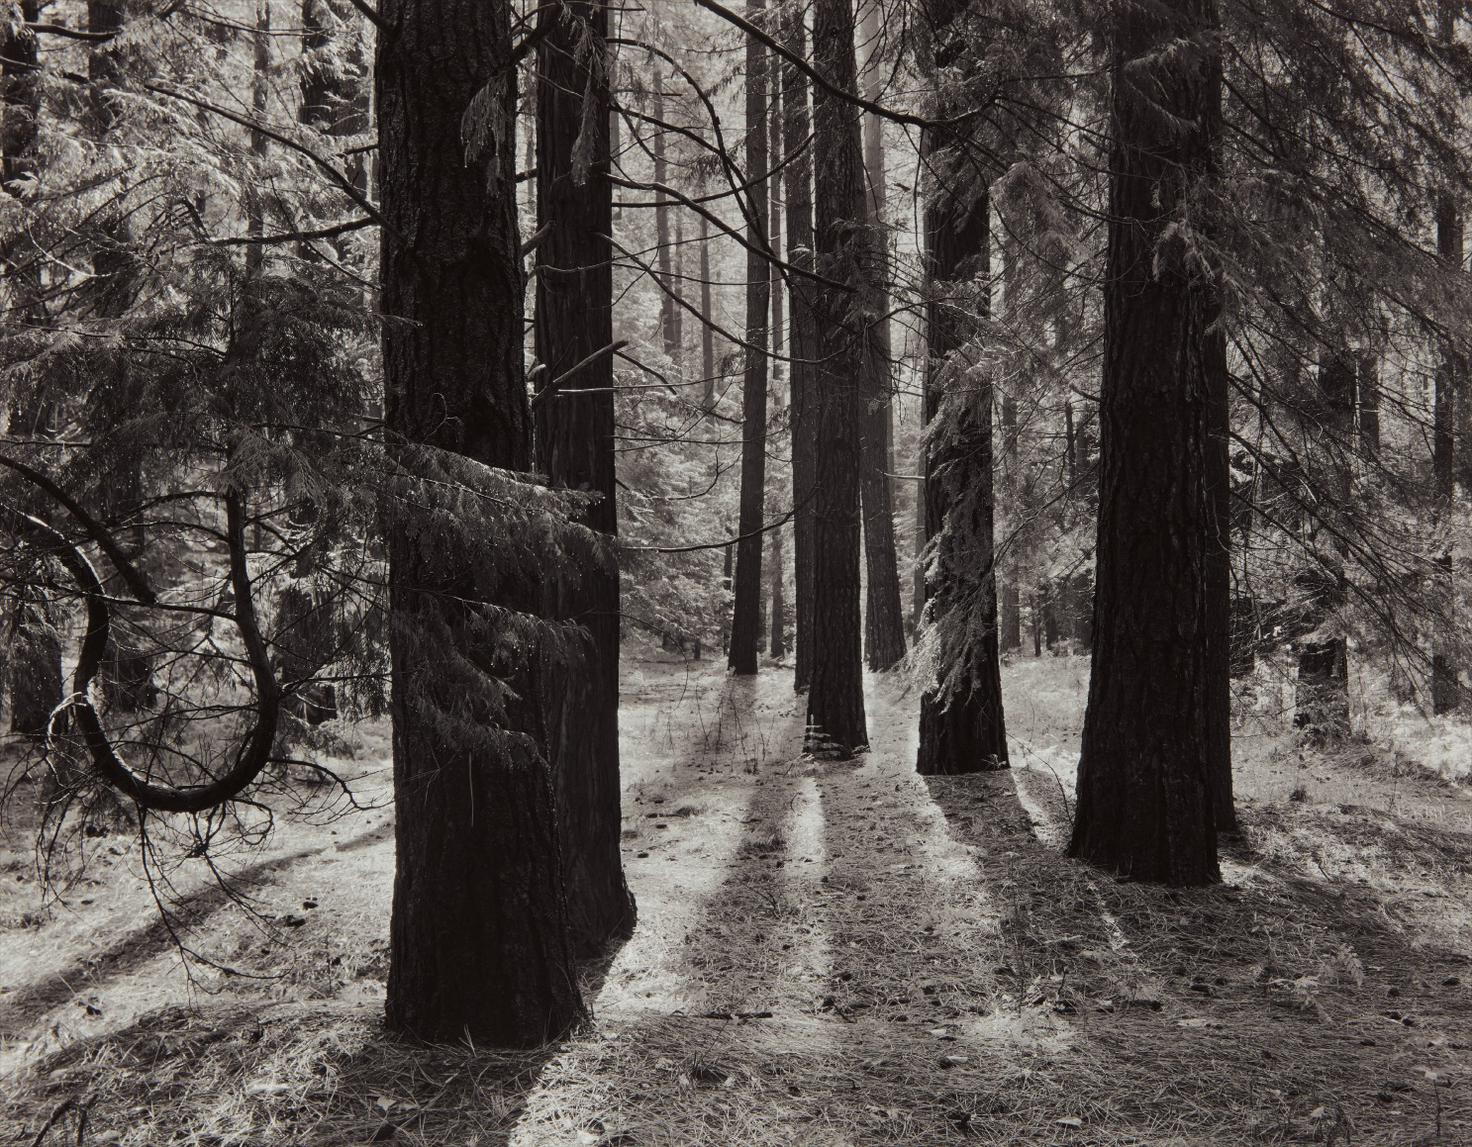 Ansel Adams-Forest Floor, Yosemite Valley, California-1950